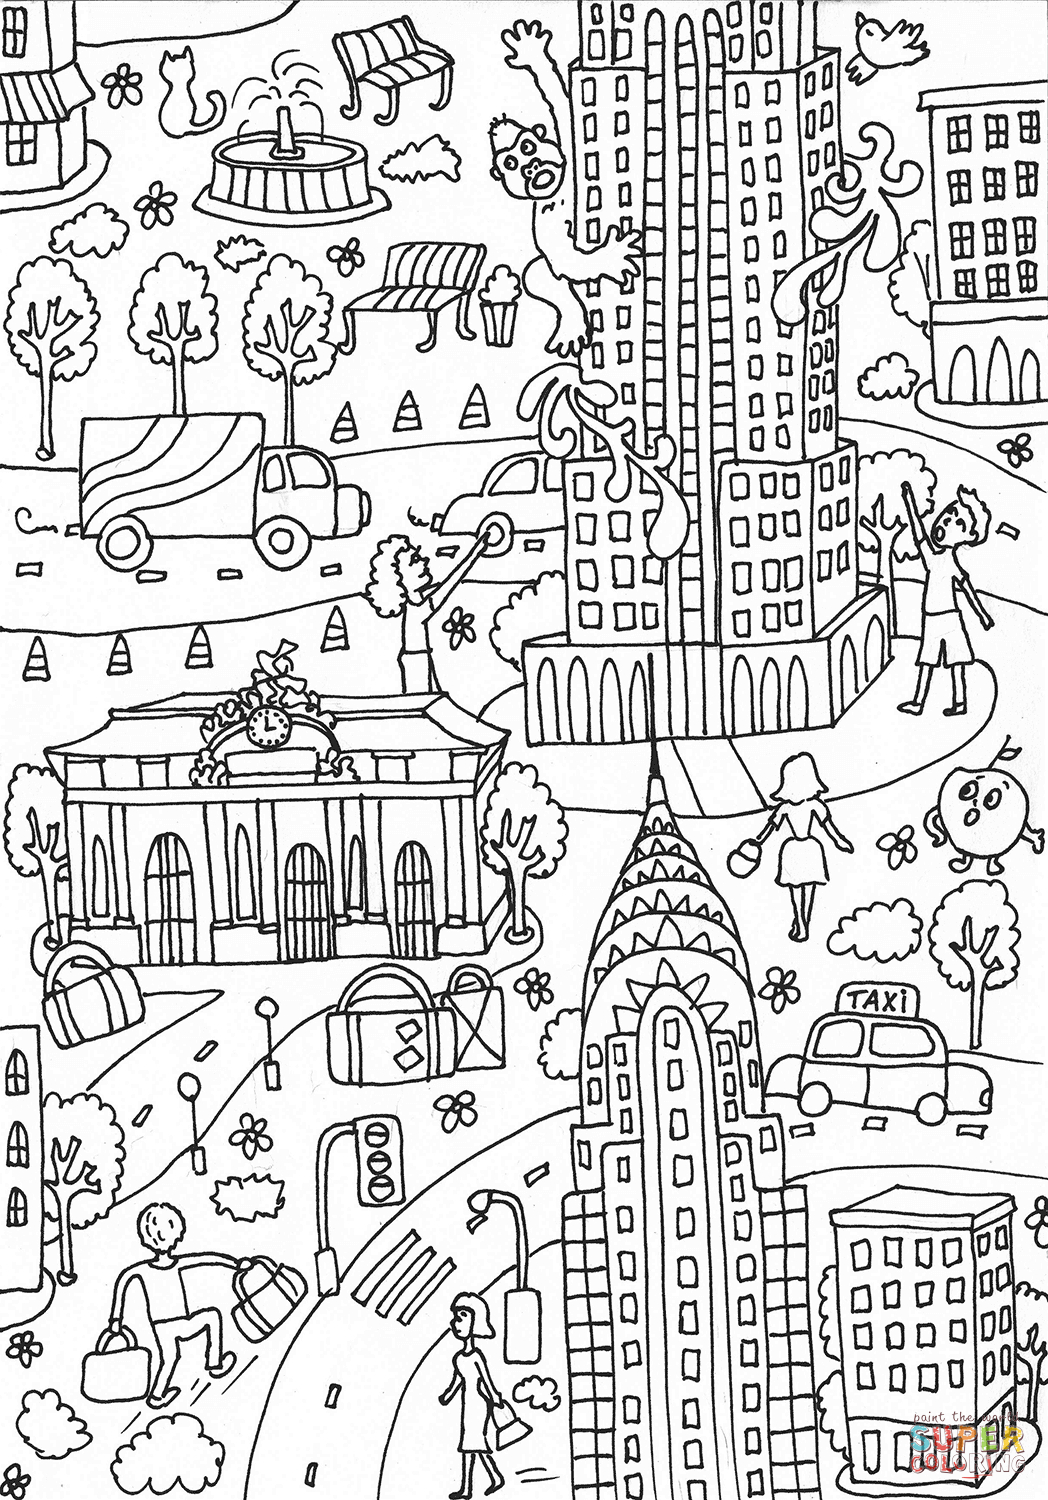 Building Coloring Page Empire State Building And Chrysler Building Coloring Page Free